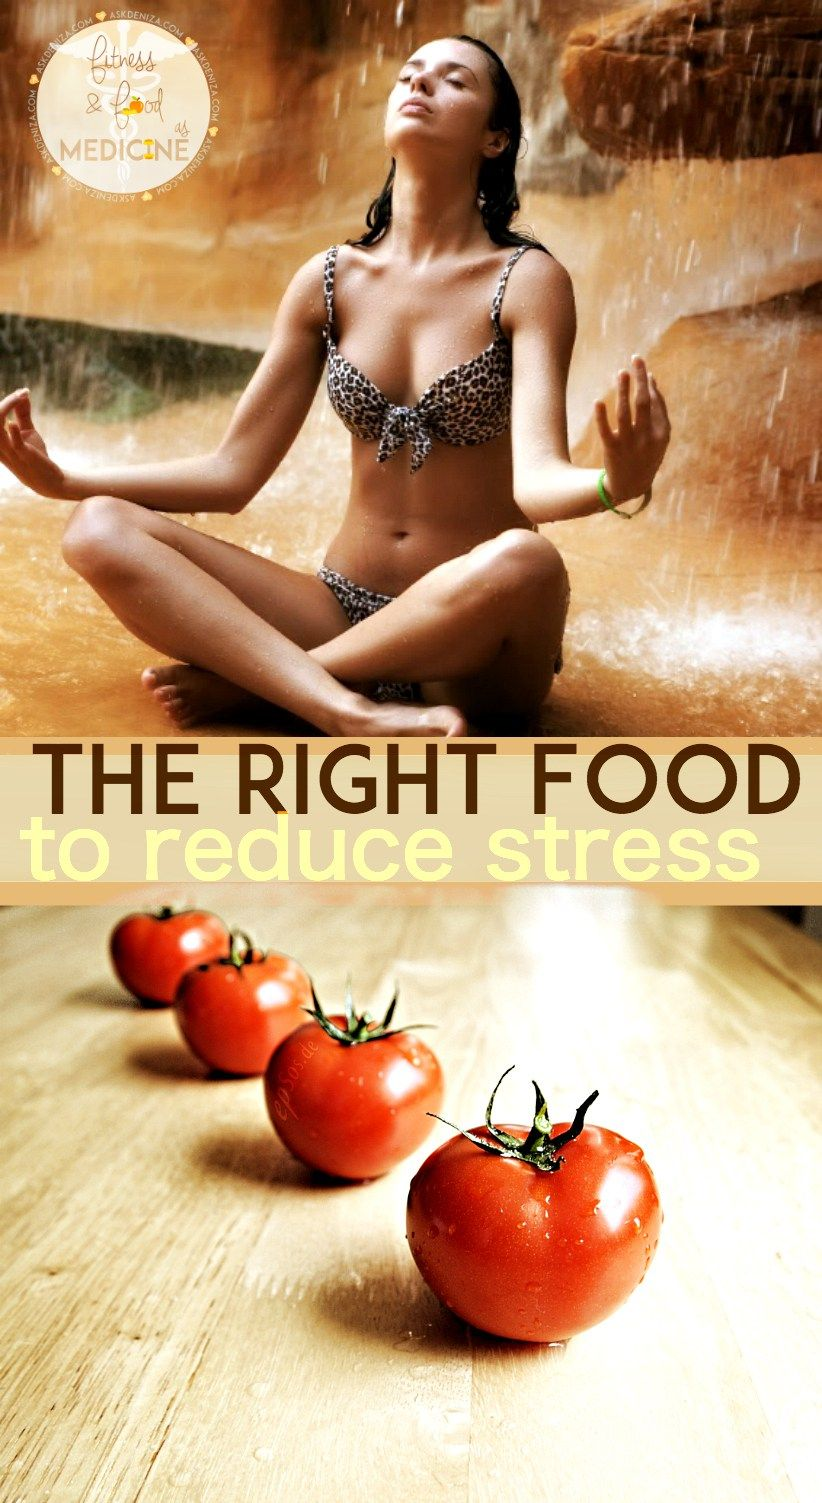 Counteract Cortisol Series P5 Food for stress relief